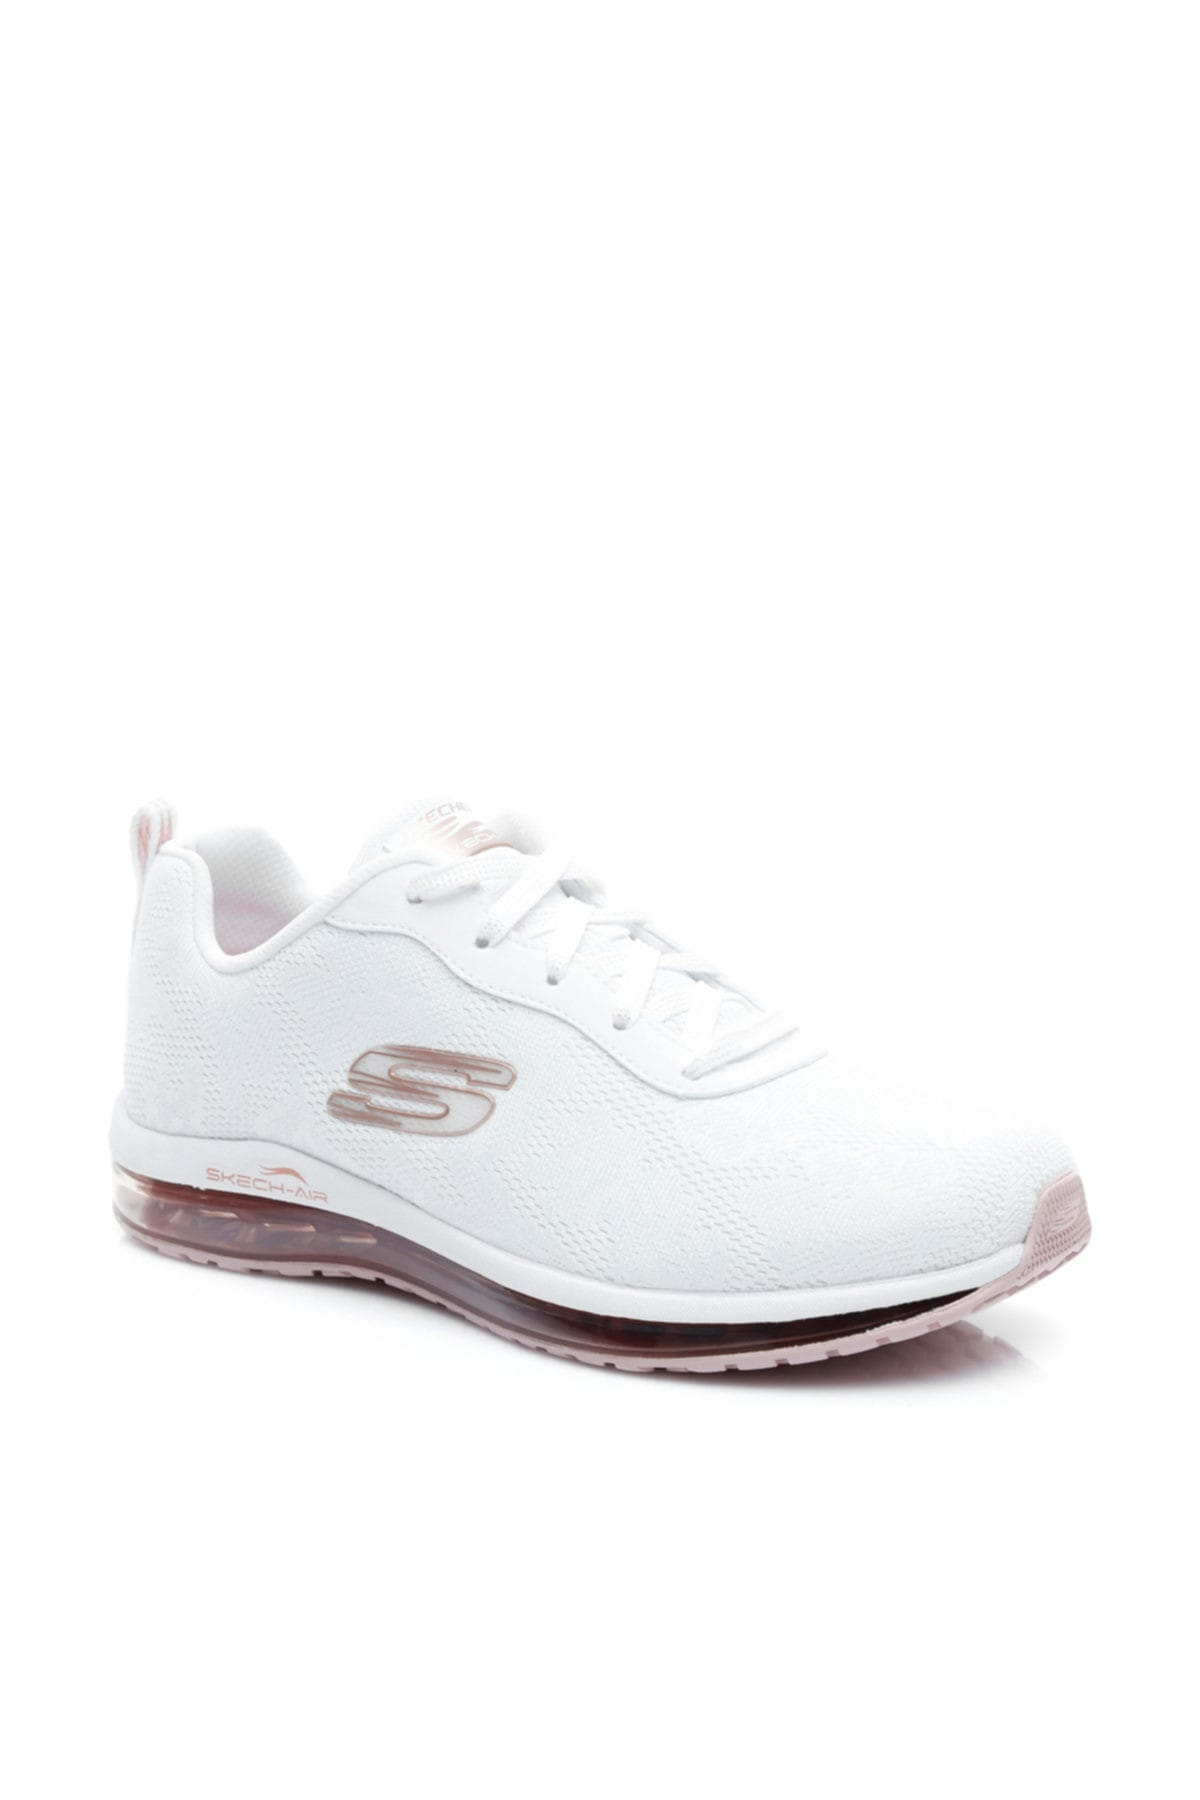 skechers skech air extreme walkout